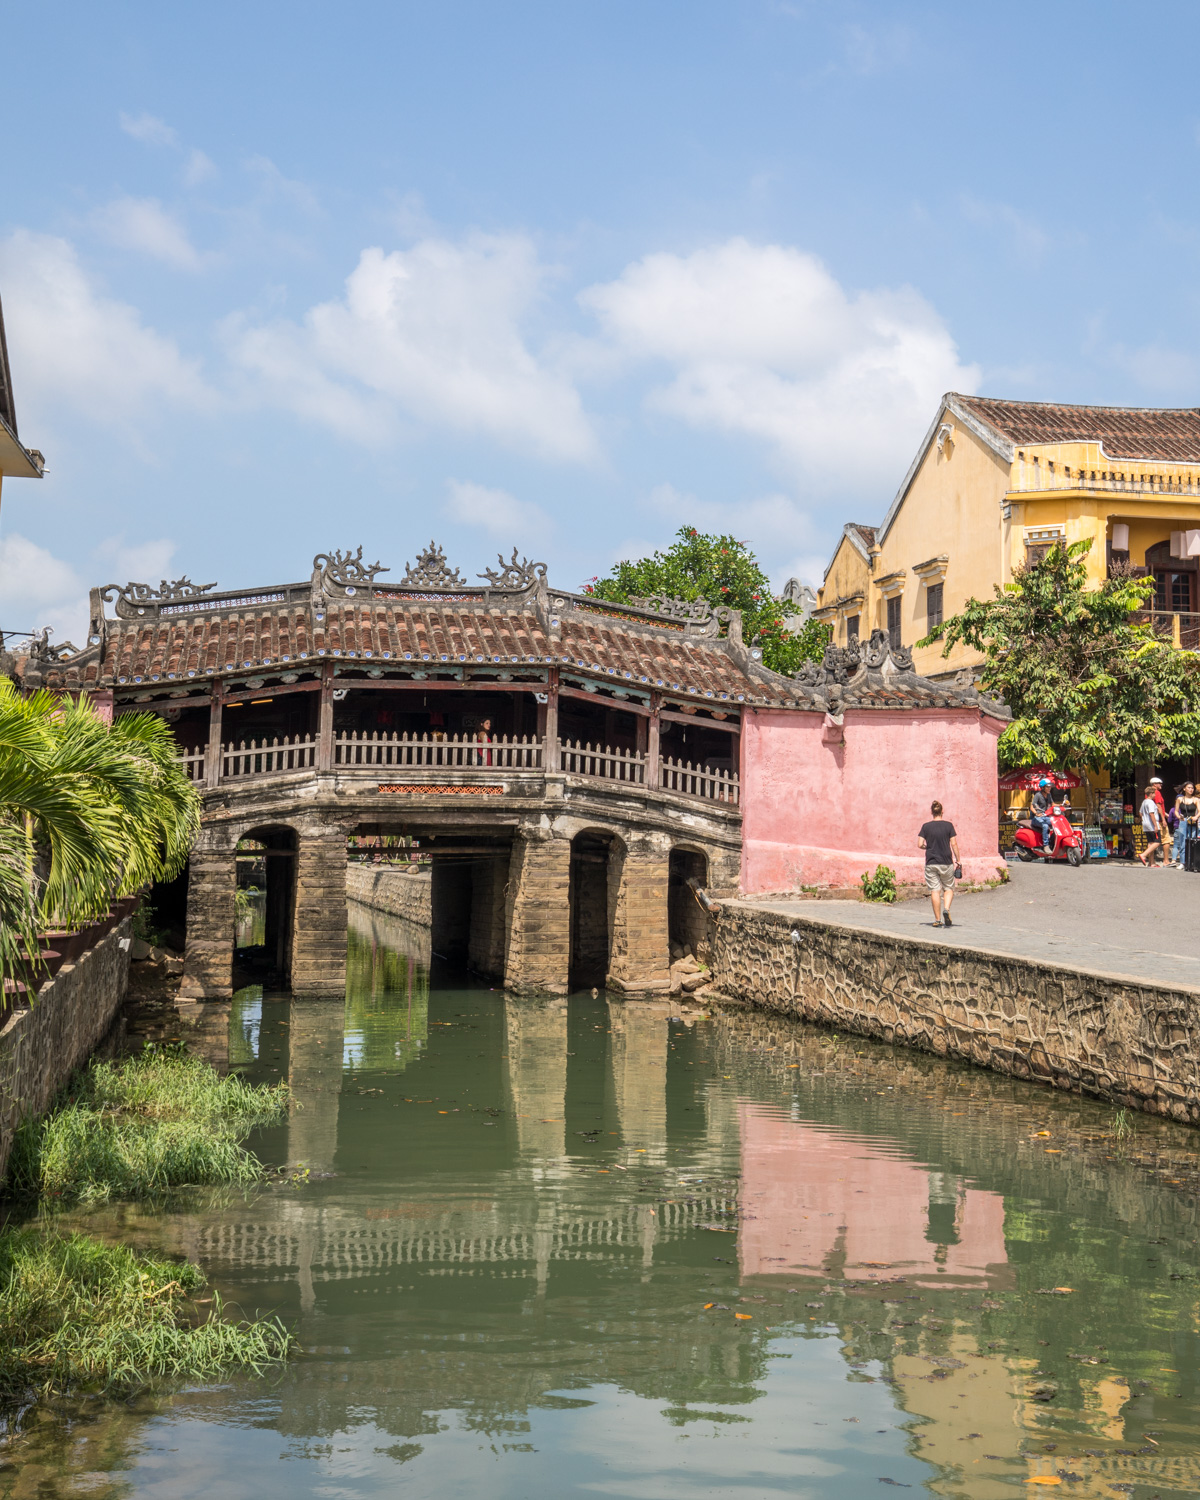 The beautiful Japanese Bridge in the Old Town of Hoi An